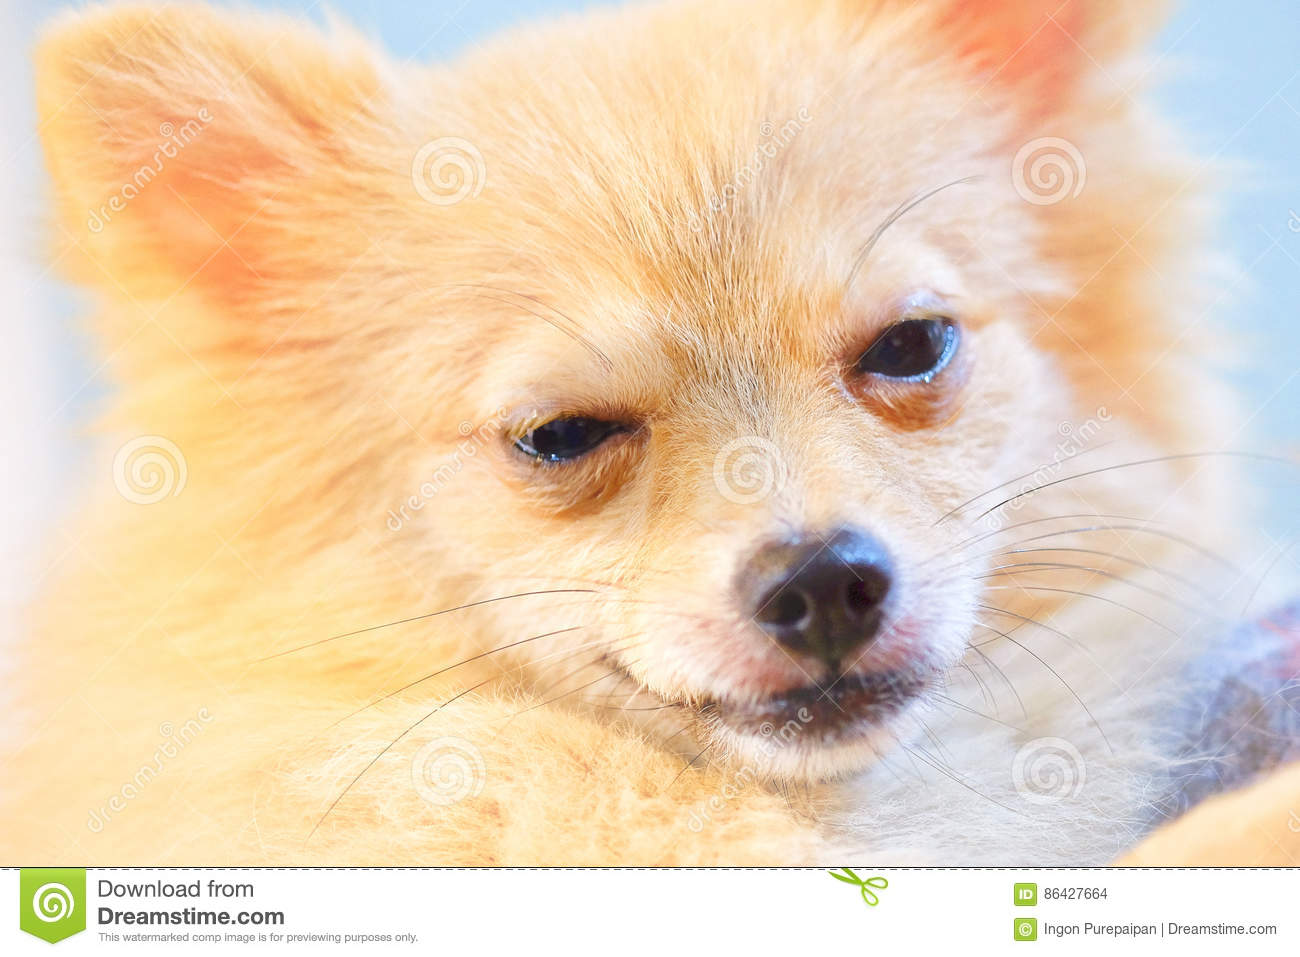 Dog Is Lethargic Stock Photo Image Of Small Puppy Purebred 86427664